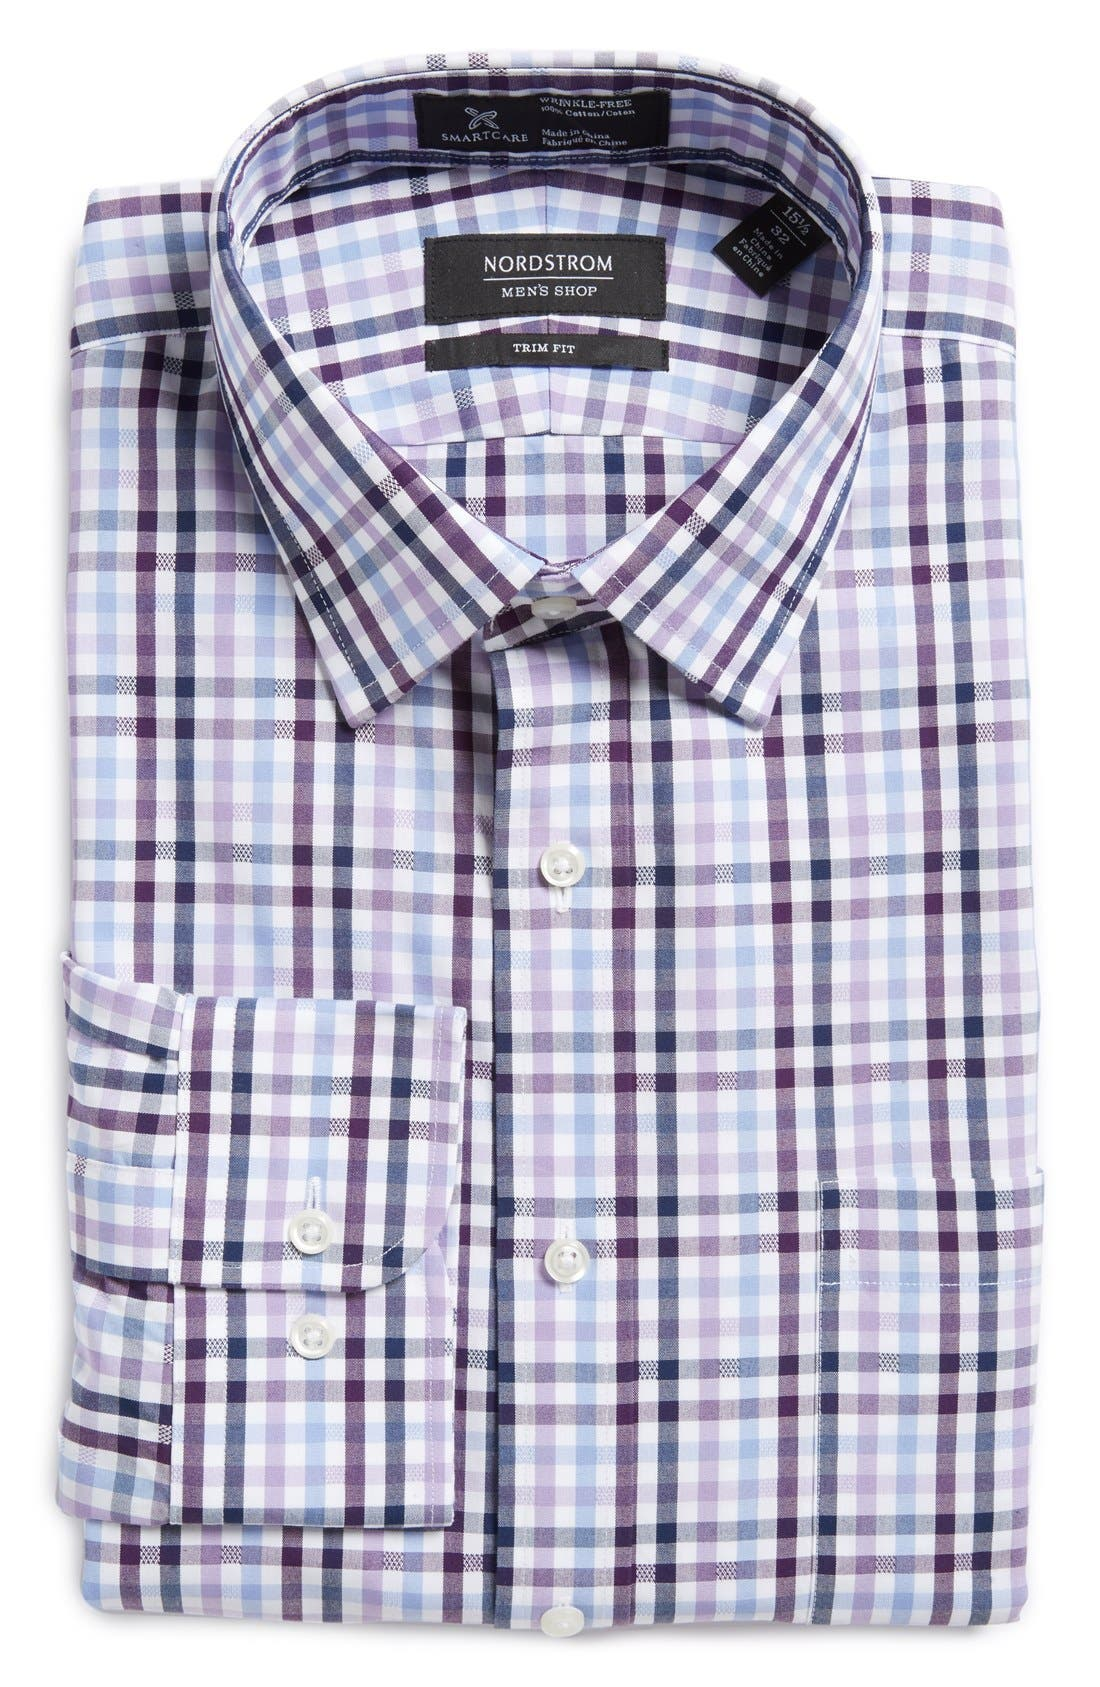 Main Image - Nordstrom Men's Shop Smartcare™ Trim Fit Check Dress Shirt